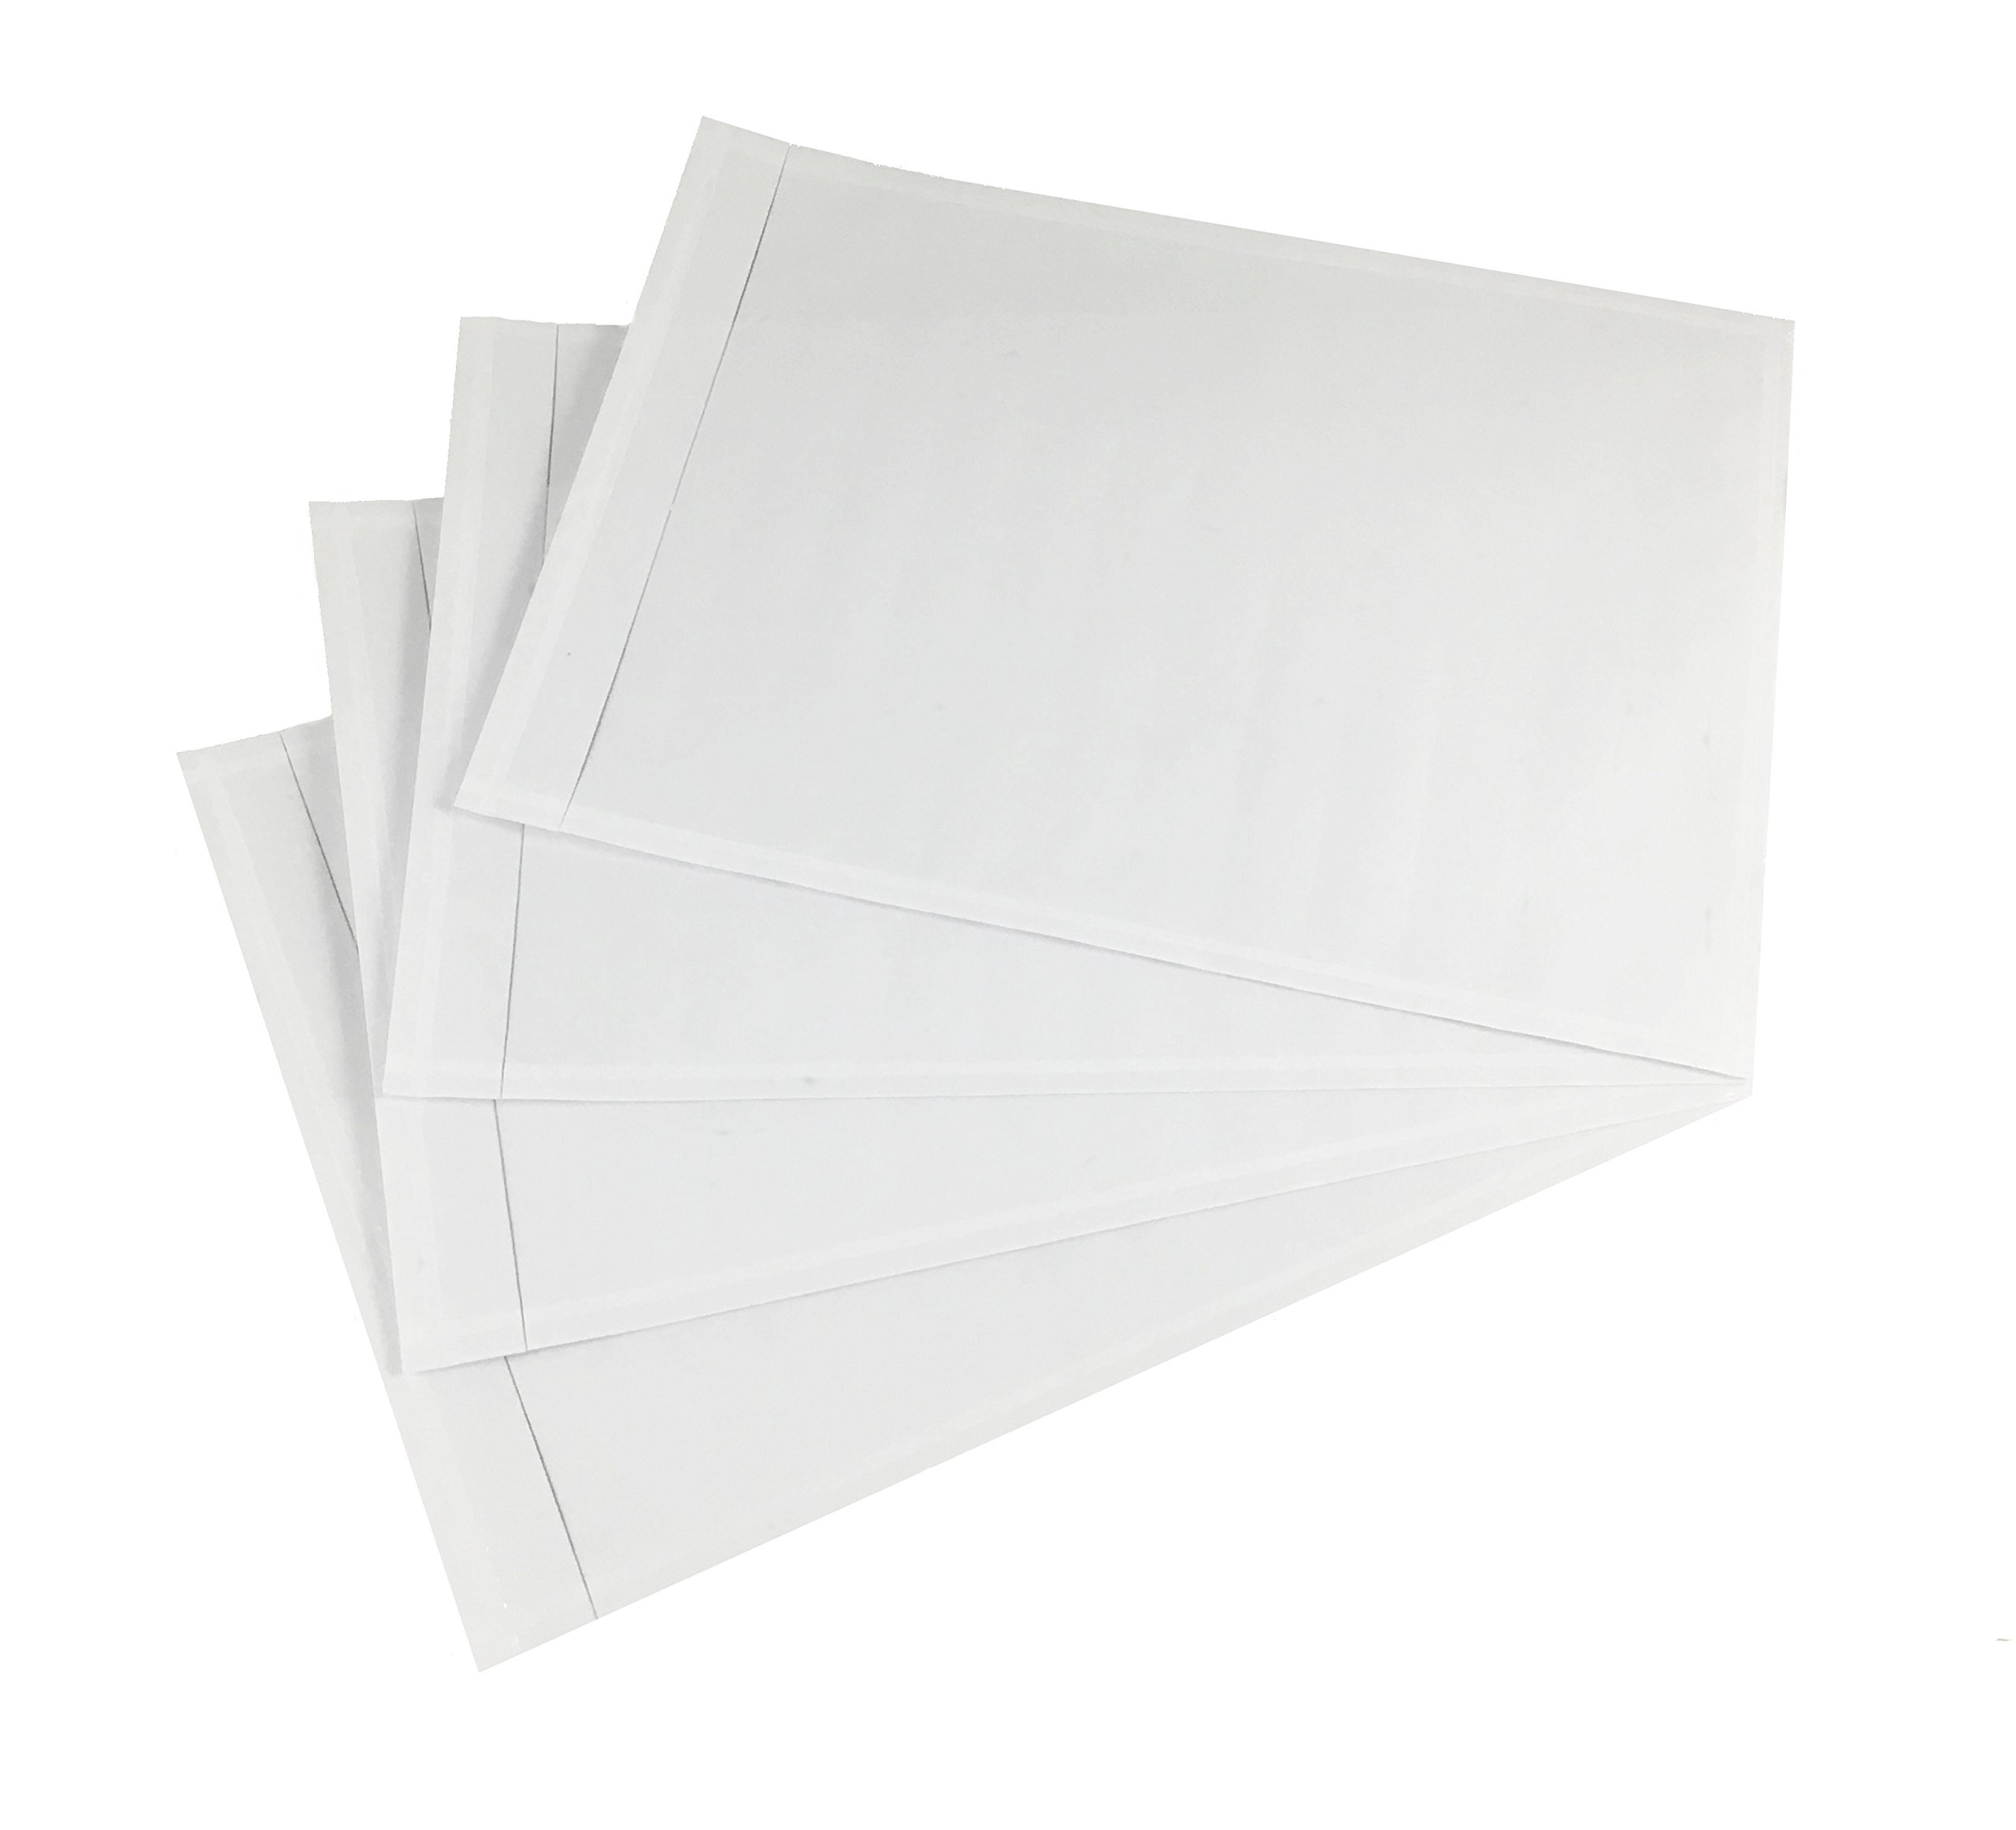 5.5'' x 7.5'' Clear Packing List Envelope Adhesive Shipping Address Invoice Label Sleeve (100 pack) by Shipping Supply Warehouse (Image #1)